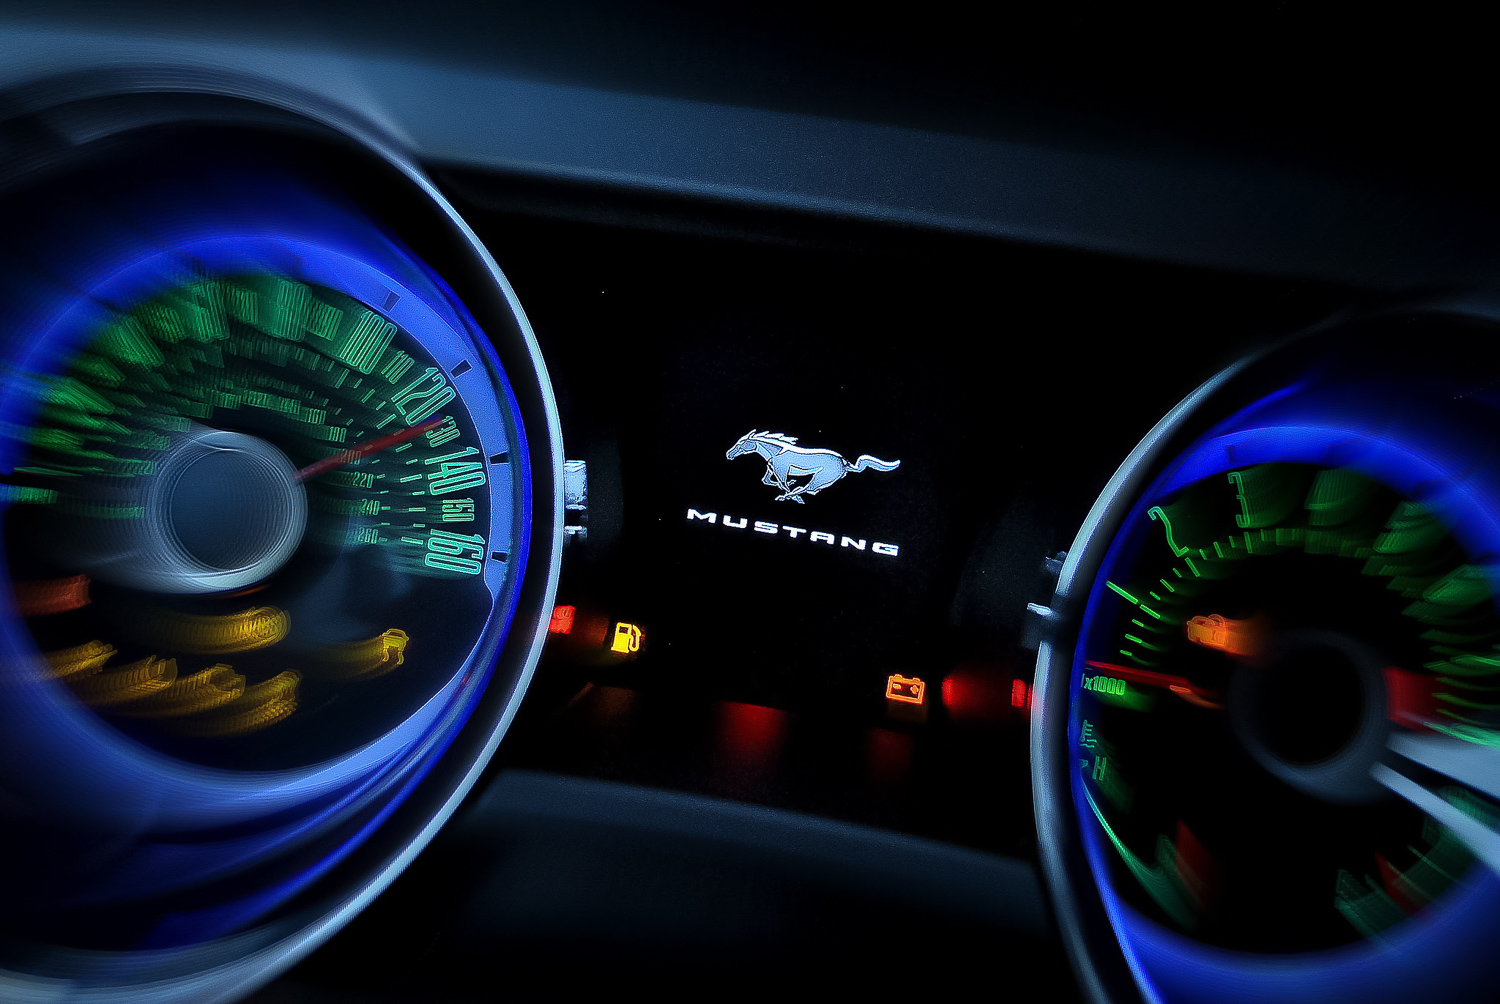 dashboard of mustang